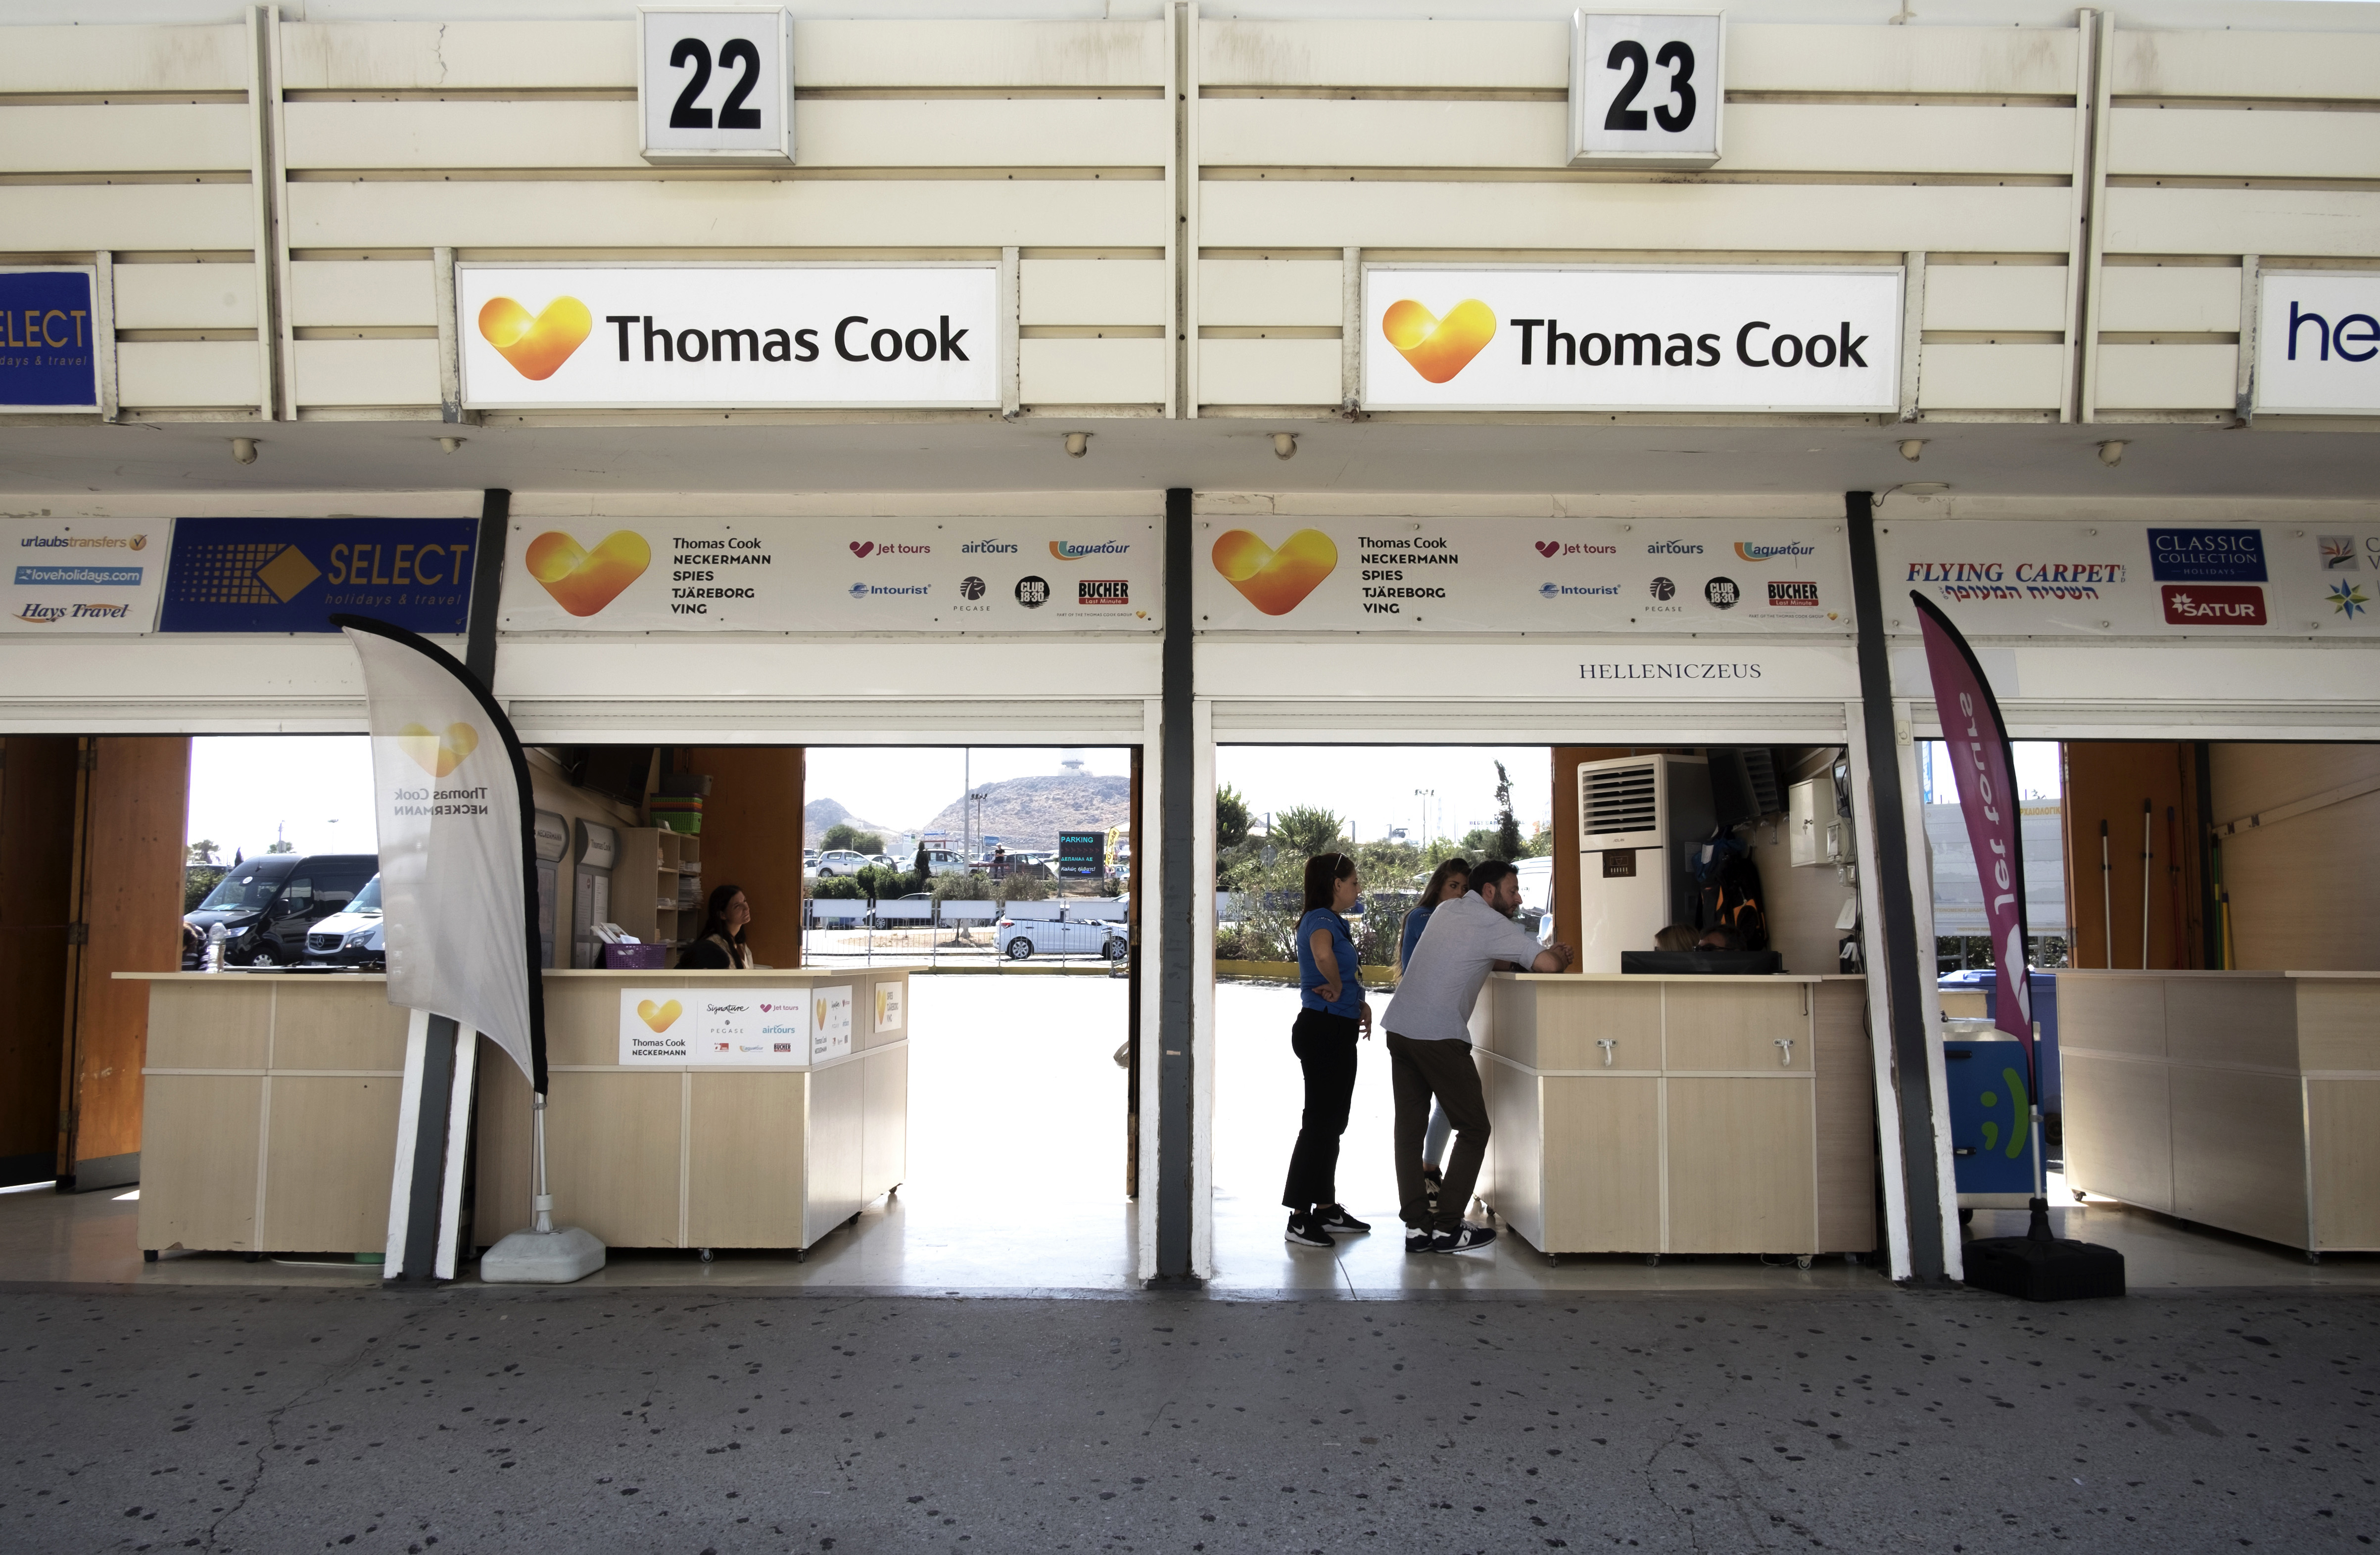 Thomas Cook relaunches as an online travel business under Chinese ownership